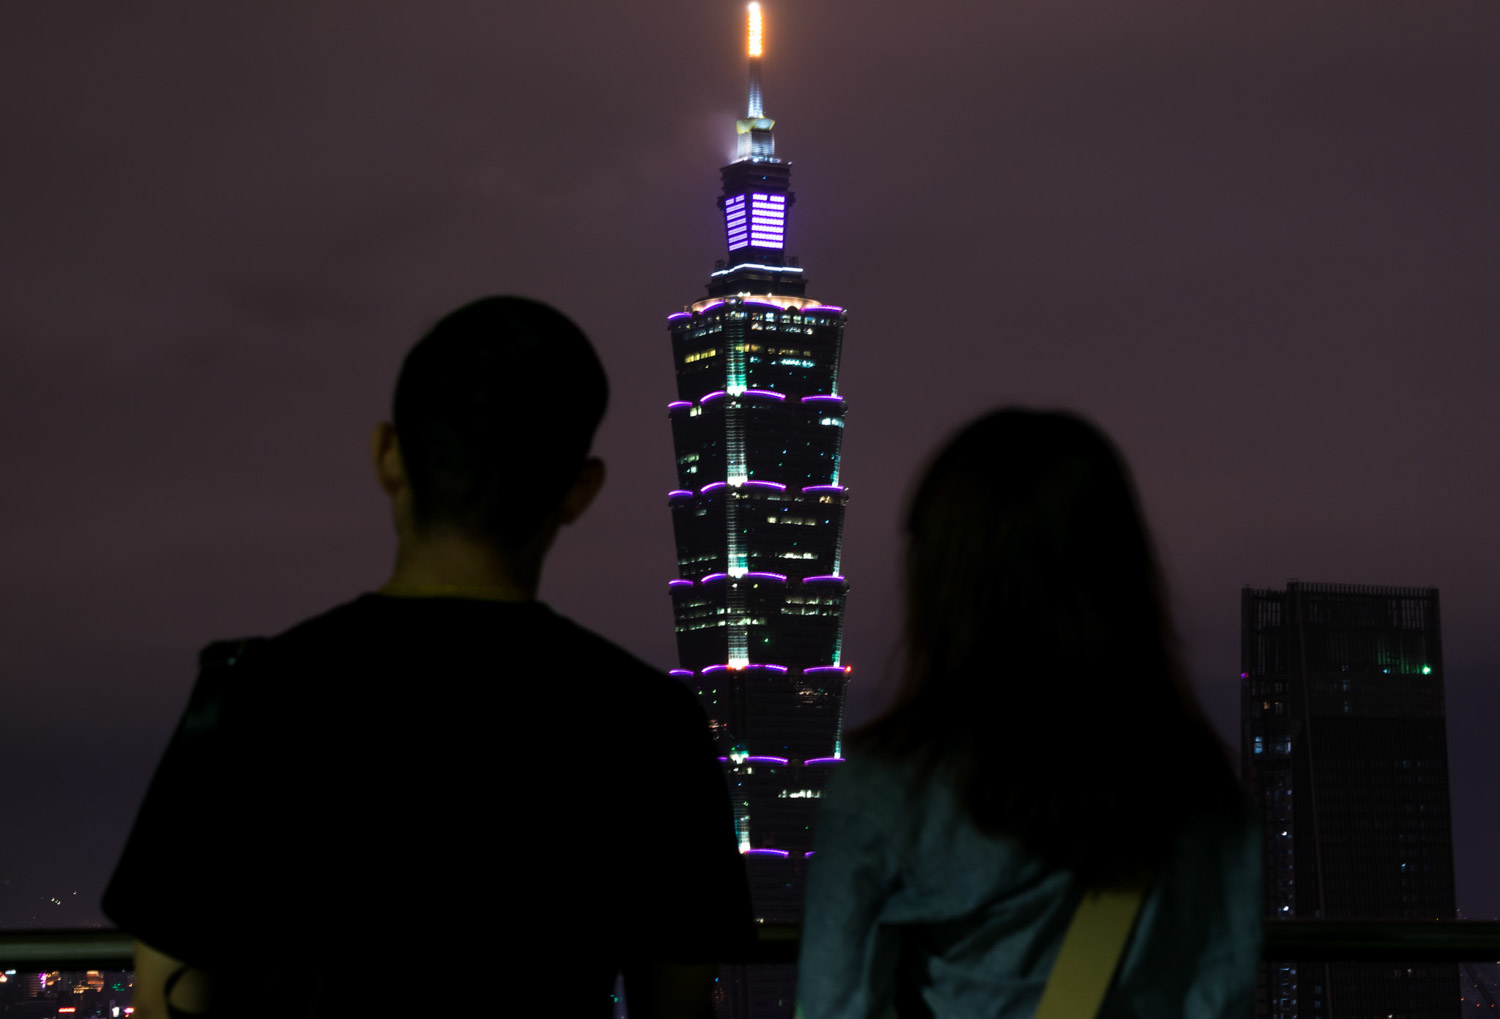 When I saw the tower being framed by the couple, I asked these two if I could take a photo and send it to them. They agreed and posed for a minute as I took this. In all honesty, I could have (by my moral standards) snapped this photo without asking because their faces are not shown so they cannot be easily identified. I had asked just in case, and so they wouldn't move too much.